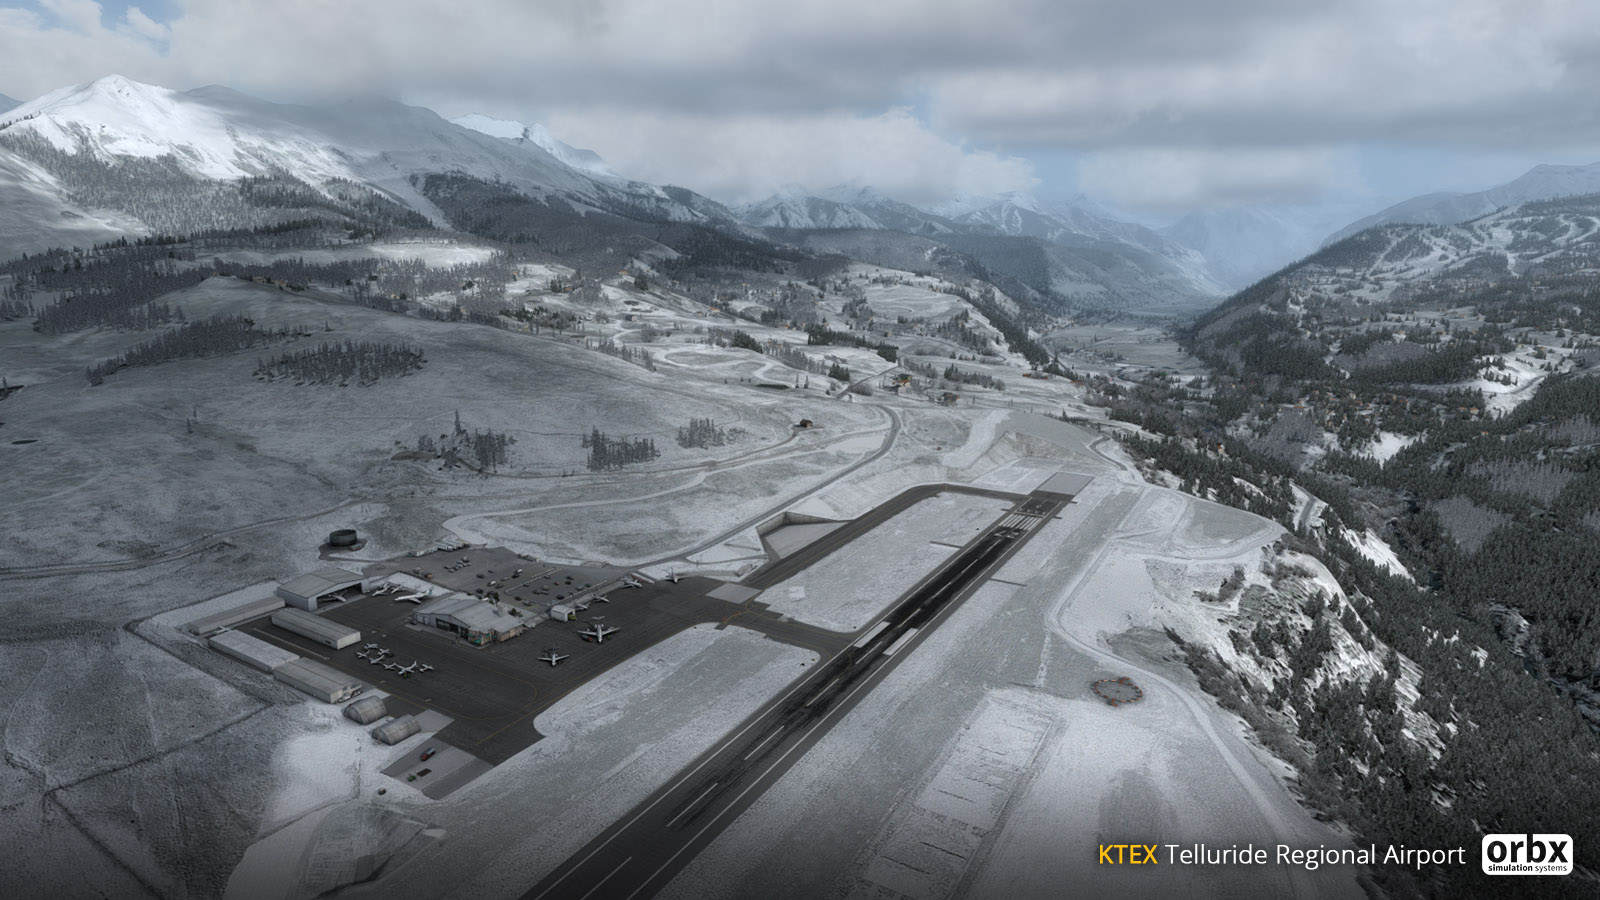 Telluride (KTEX) – more images from ORBX's Jarrad Marshall